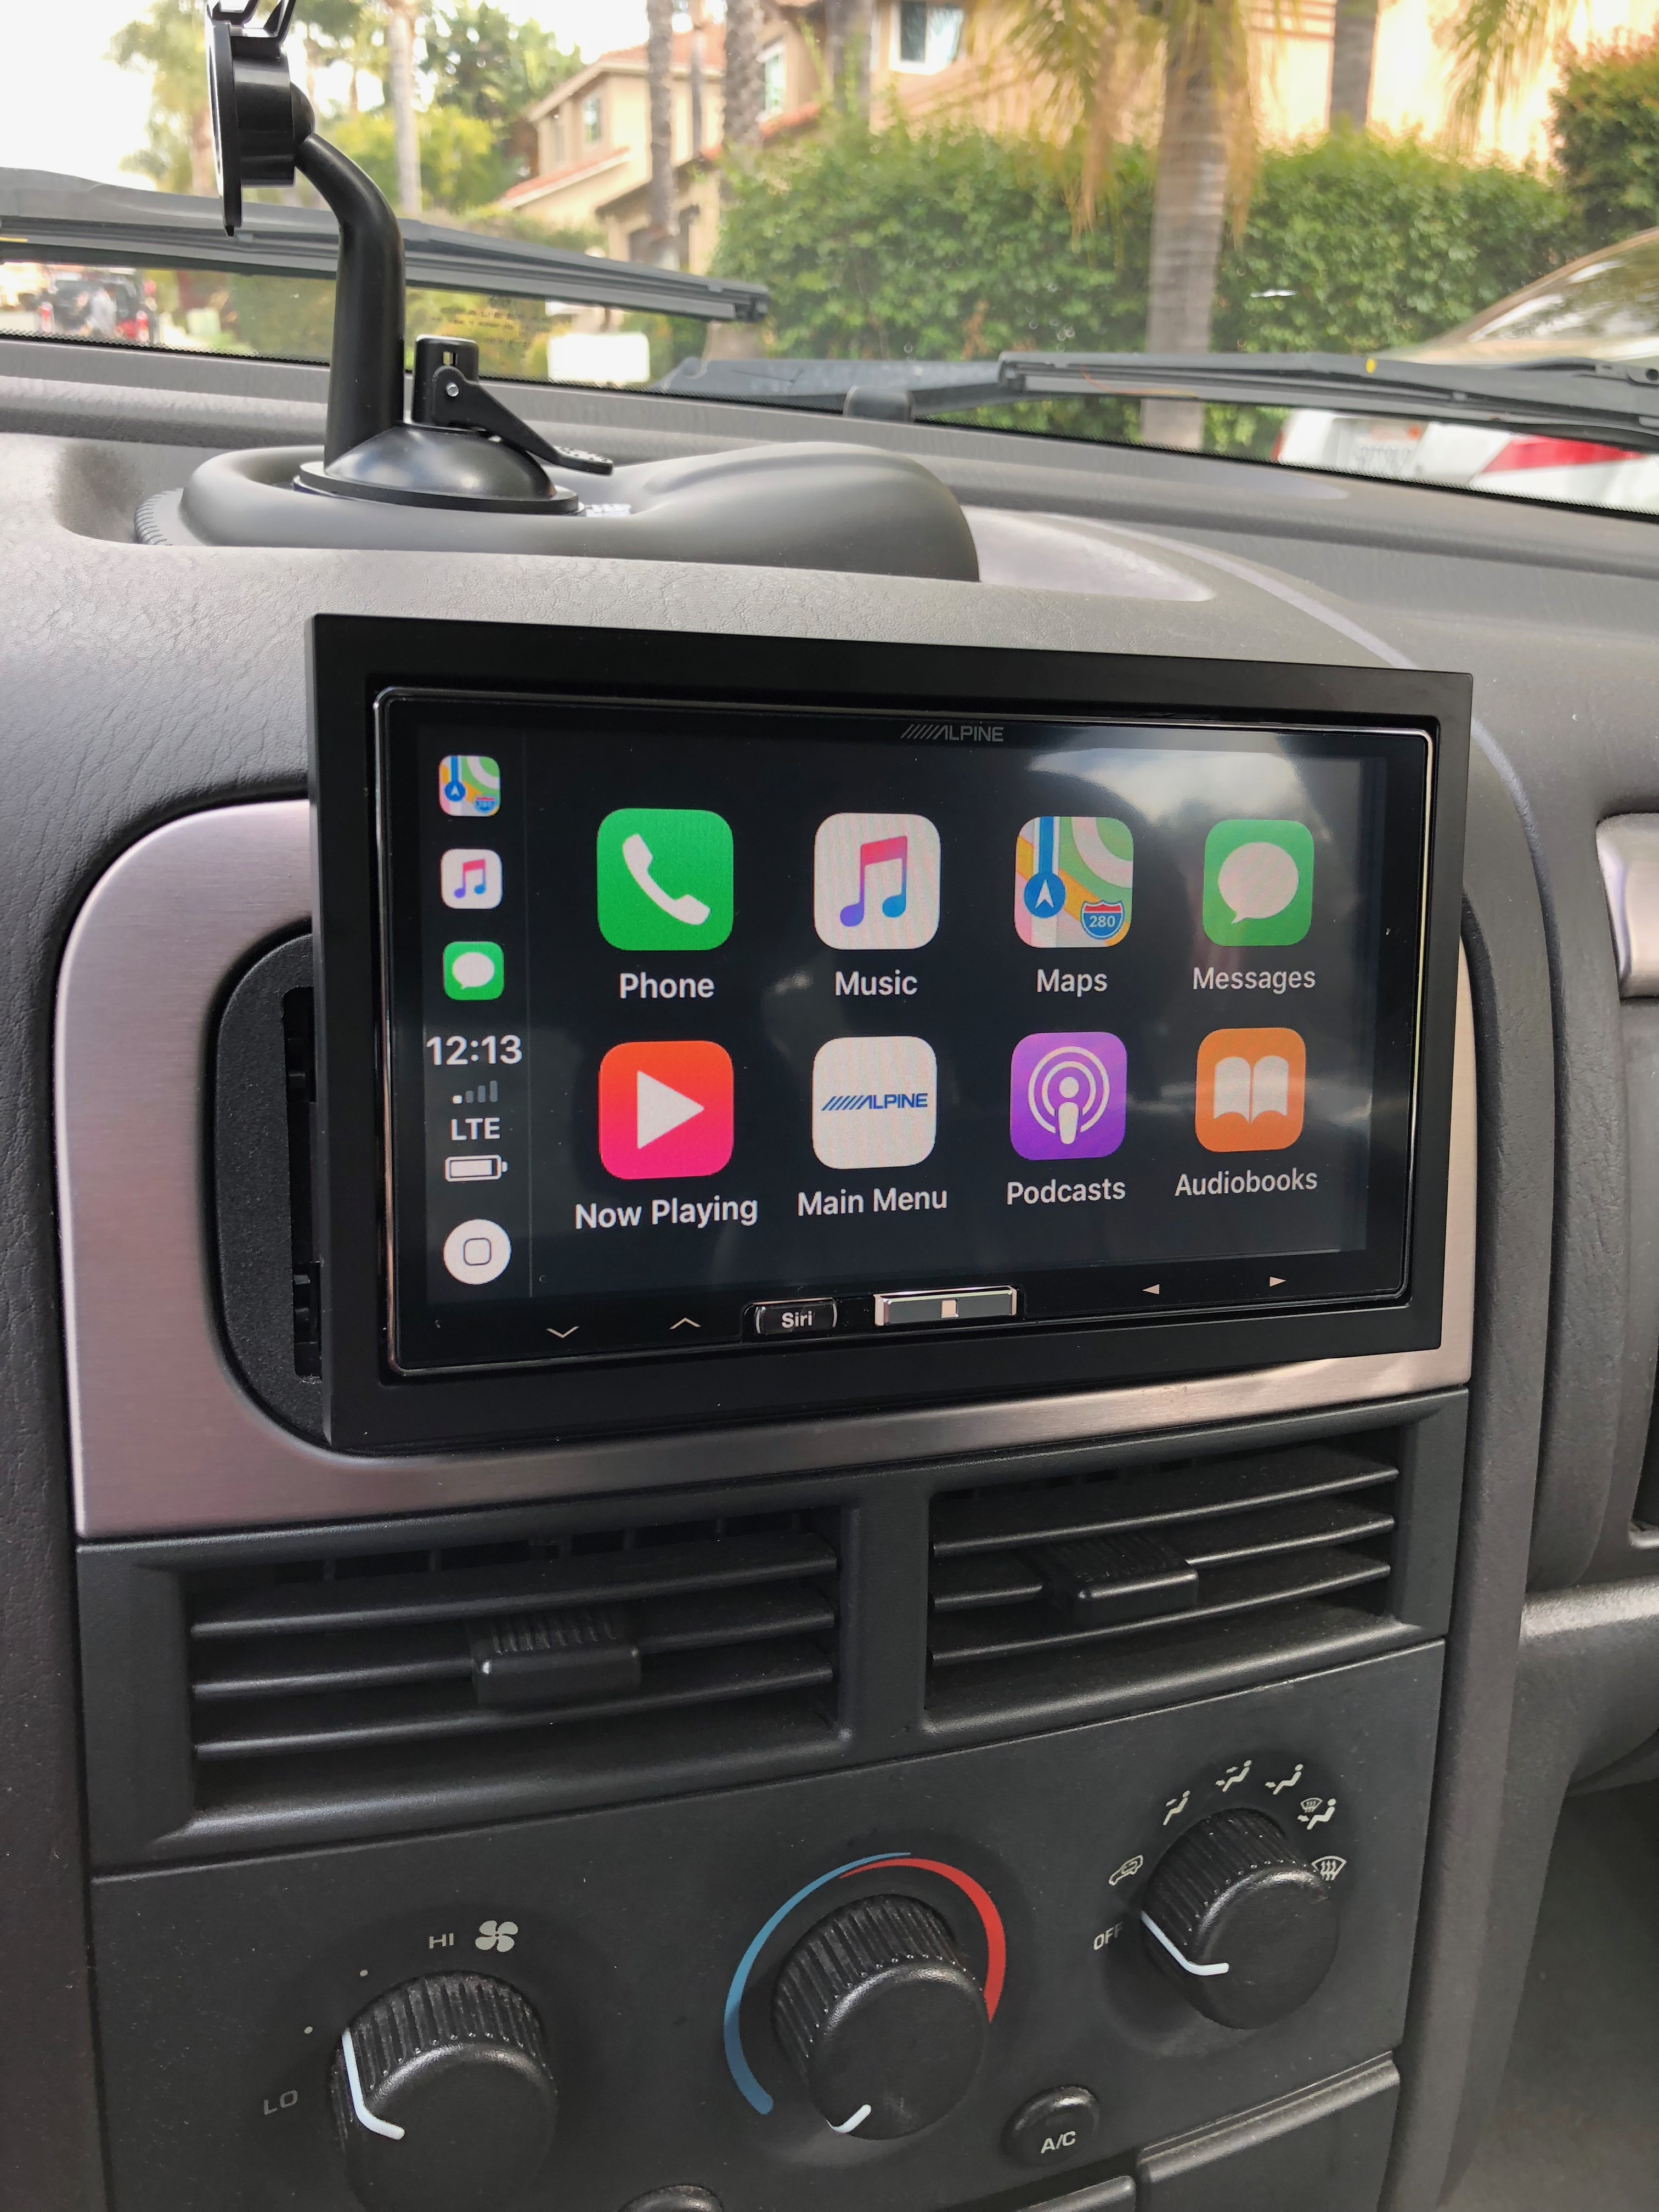 Carplay Wireless Aftermarket Head Unit Page 2 Cigarette Lighter Wiring Plug Jeep Cherokee Forum So The Only Think You Can Do Is Switch To Another Input Like Itunes Stop Radio Camera Was Located In Top Middle Of License Plate